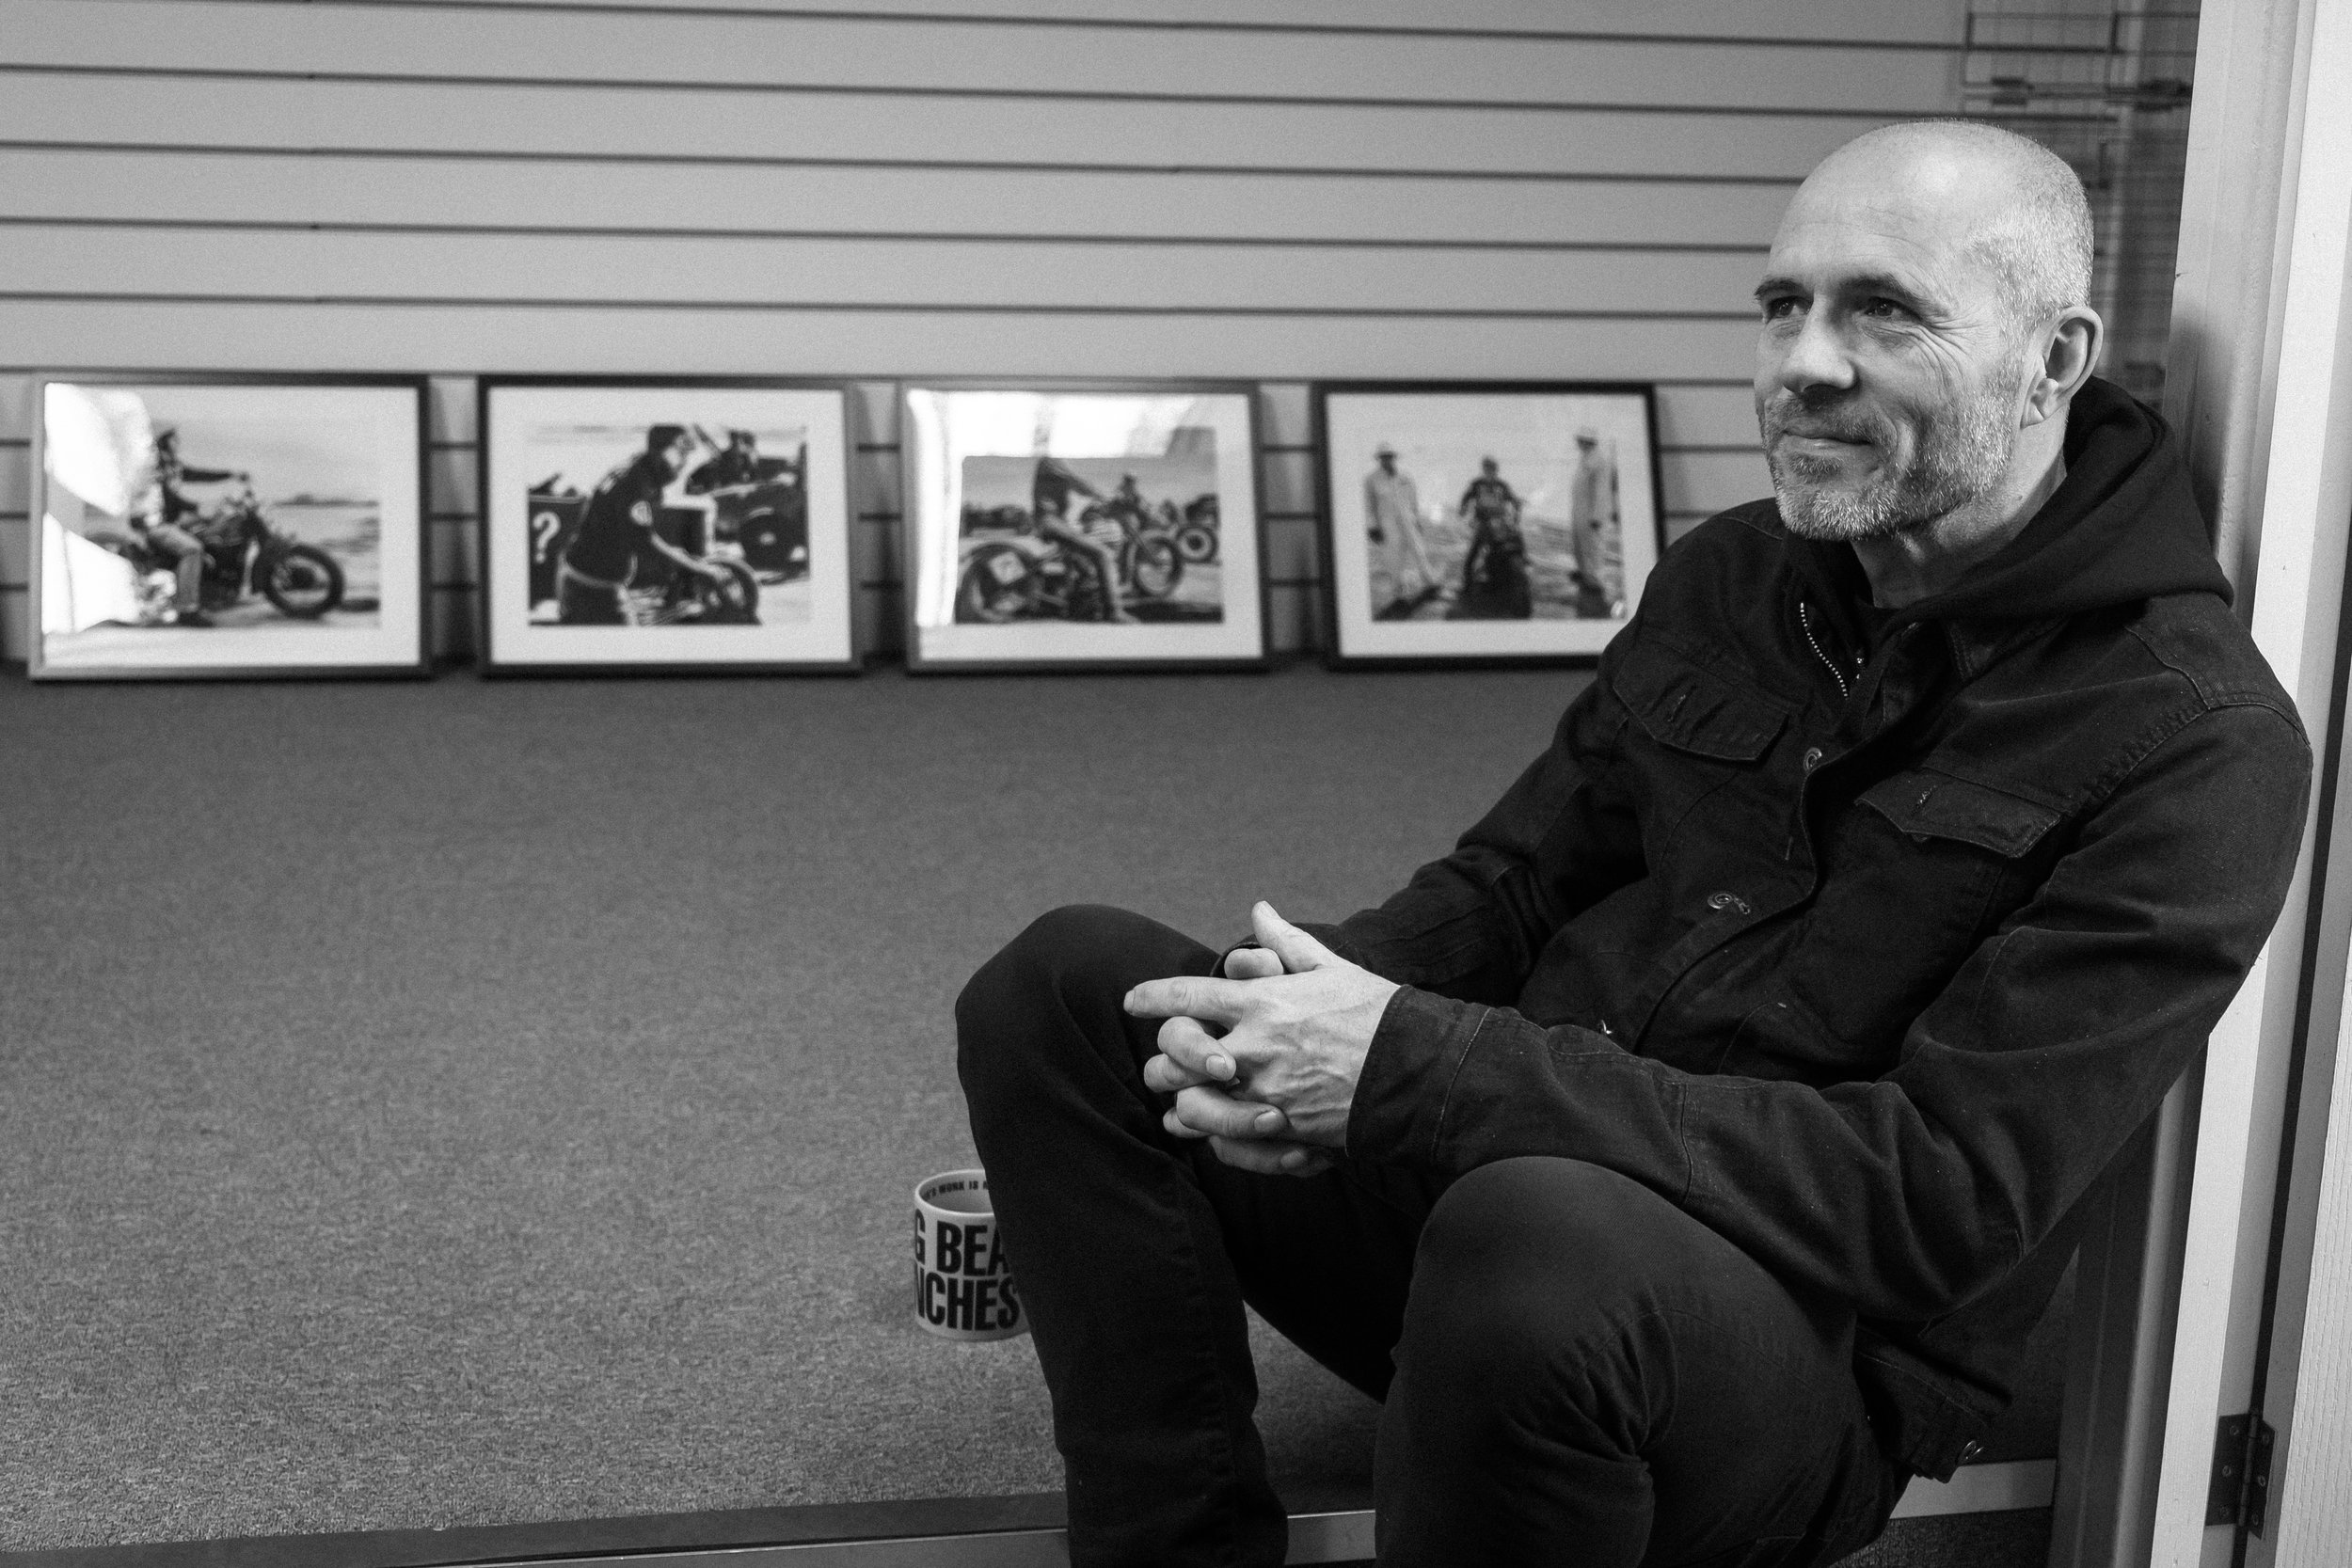 Paul Hayes-Watkins relaxing in his element at Grizzly's, surrounded by prints from TROG.